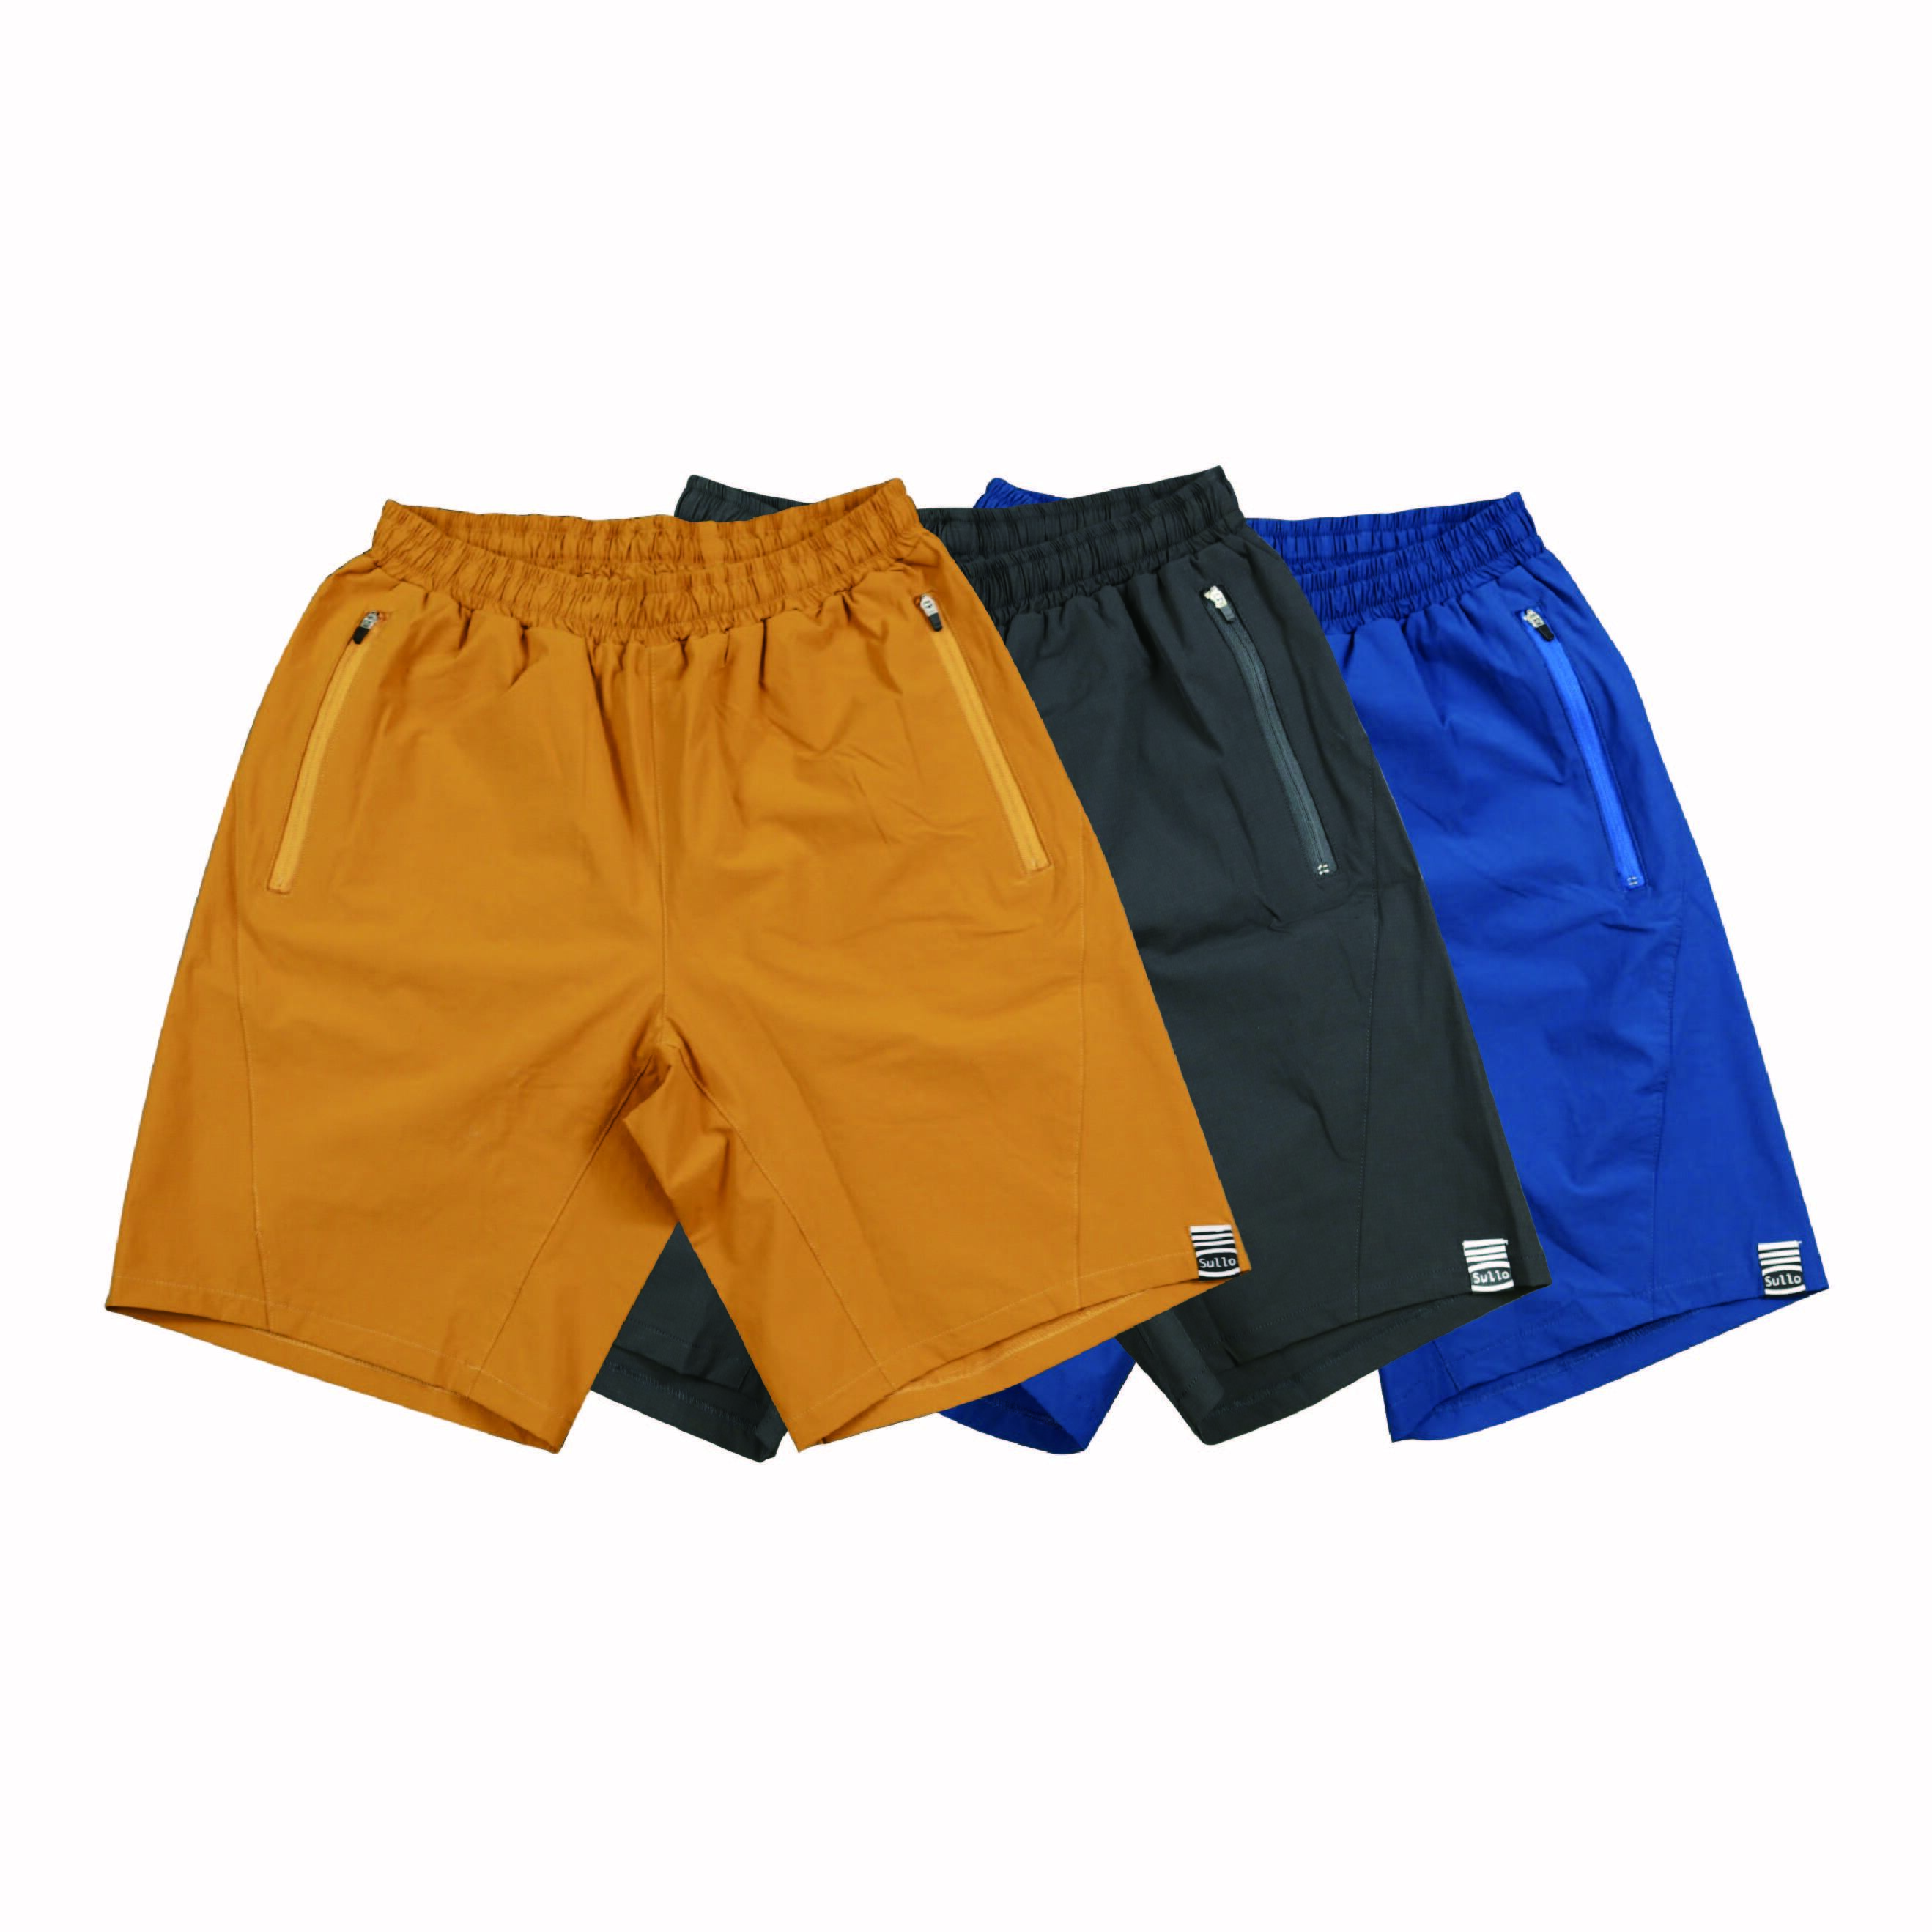 WALK ABOUT SHORTS(全3カラー)